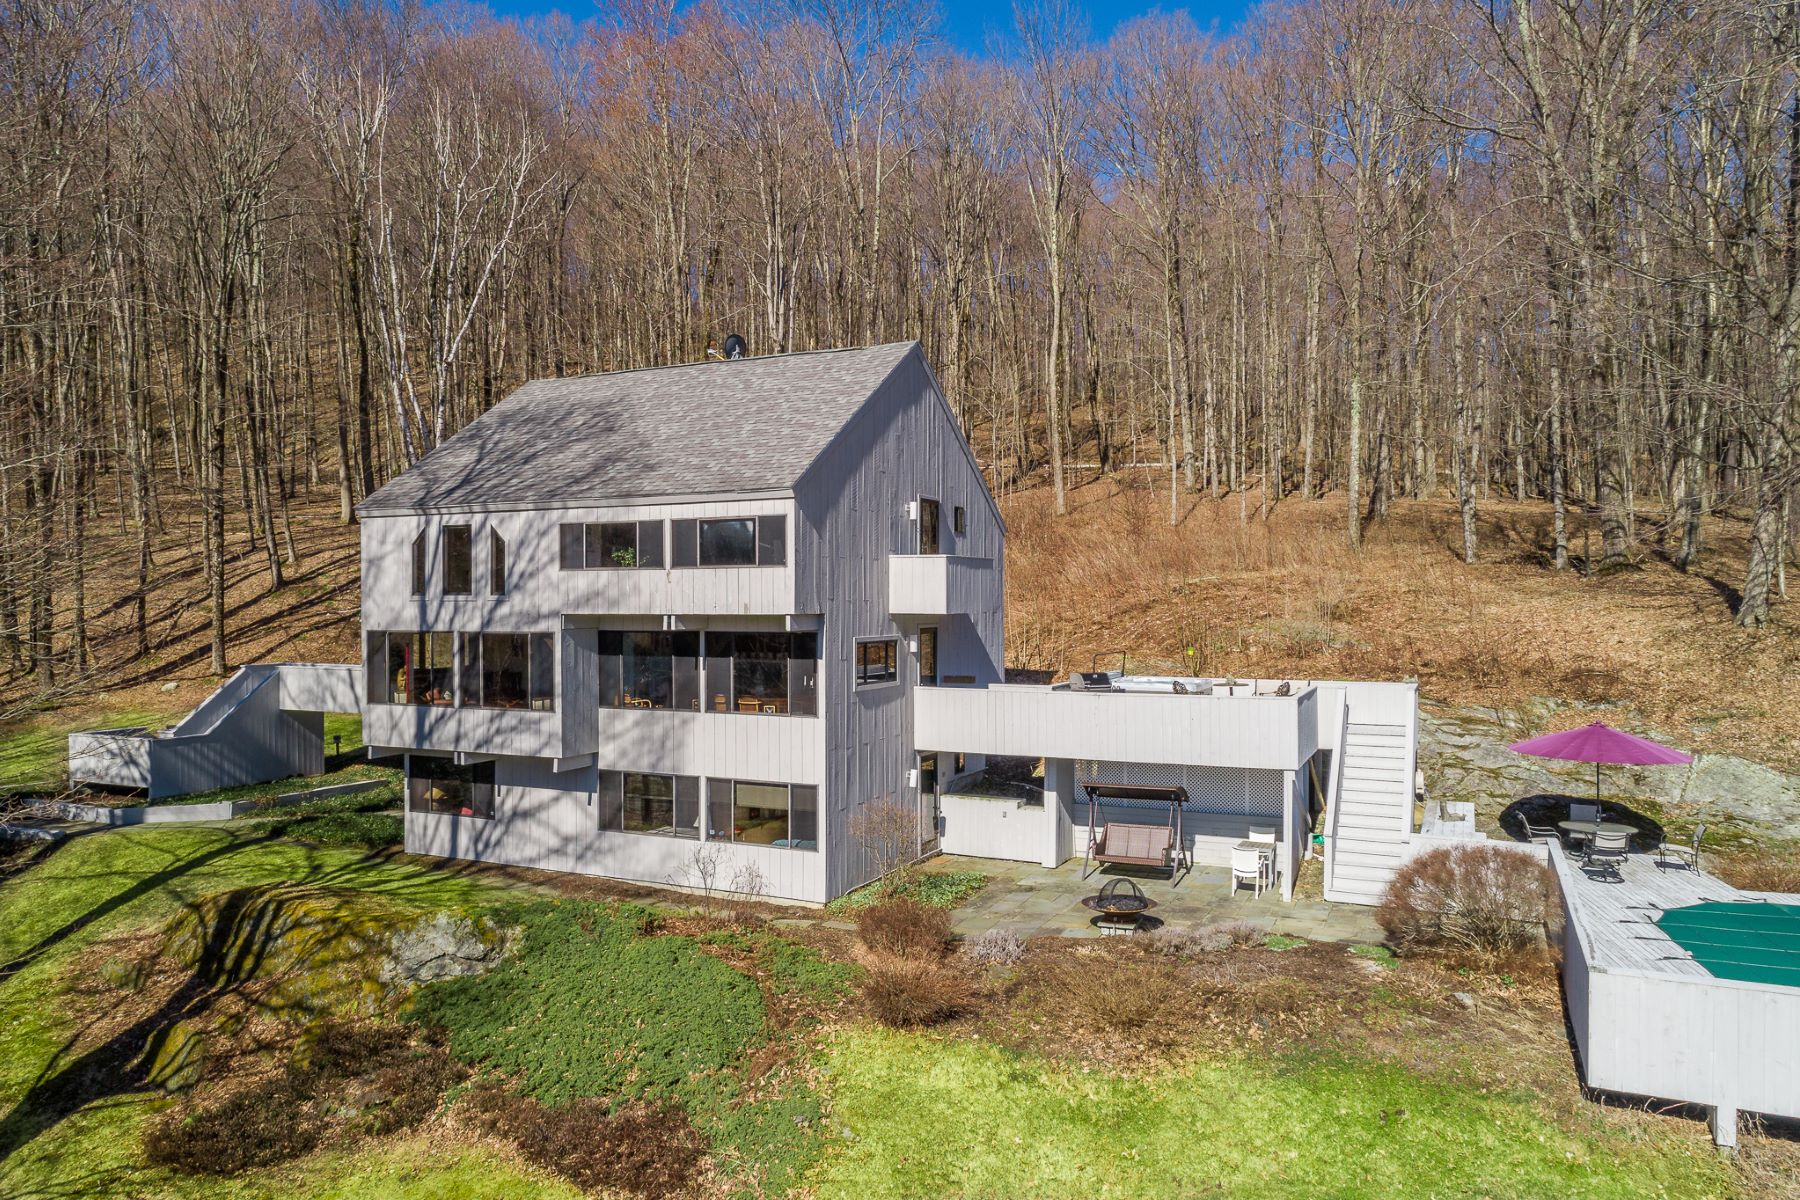 Single Family Home for Active at Light Filled Custom Contemporary 48 Victoria Ln Lanesboro, Massachusetts 01237 United States